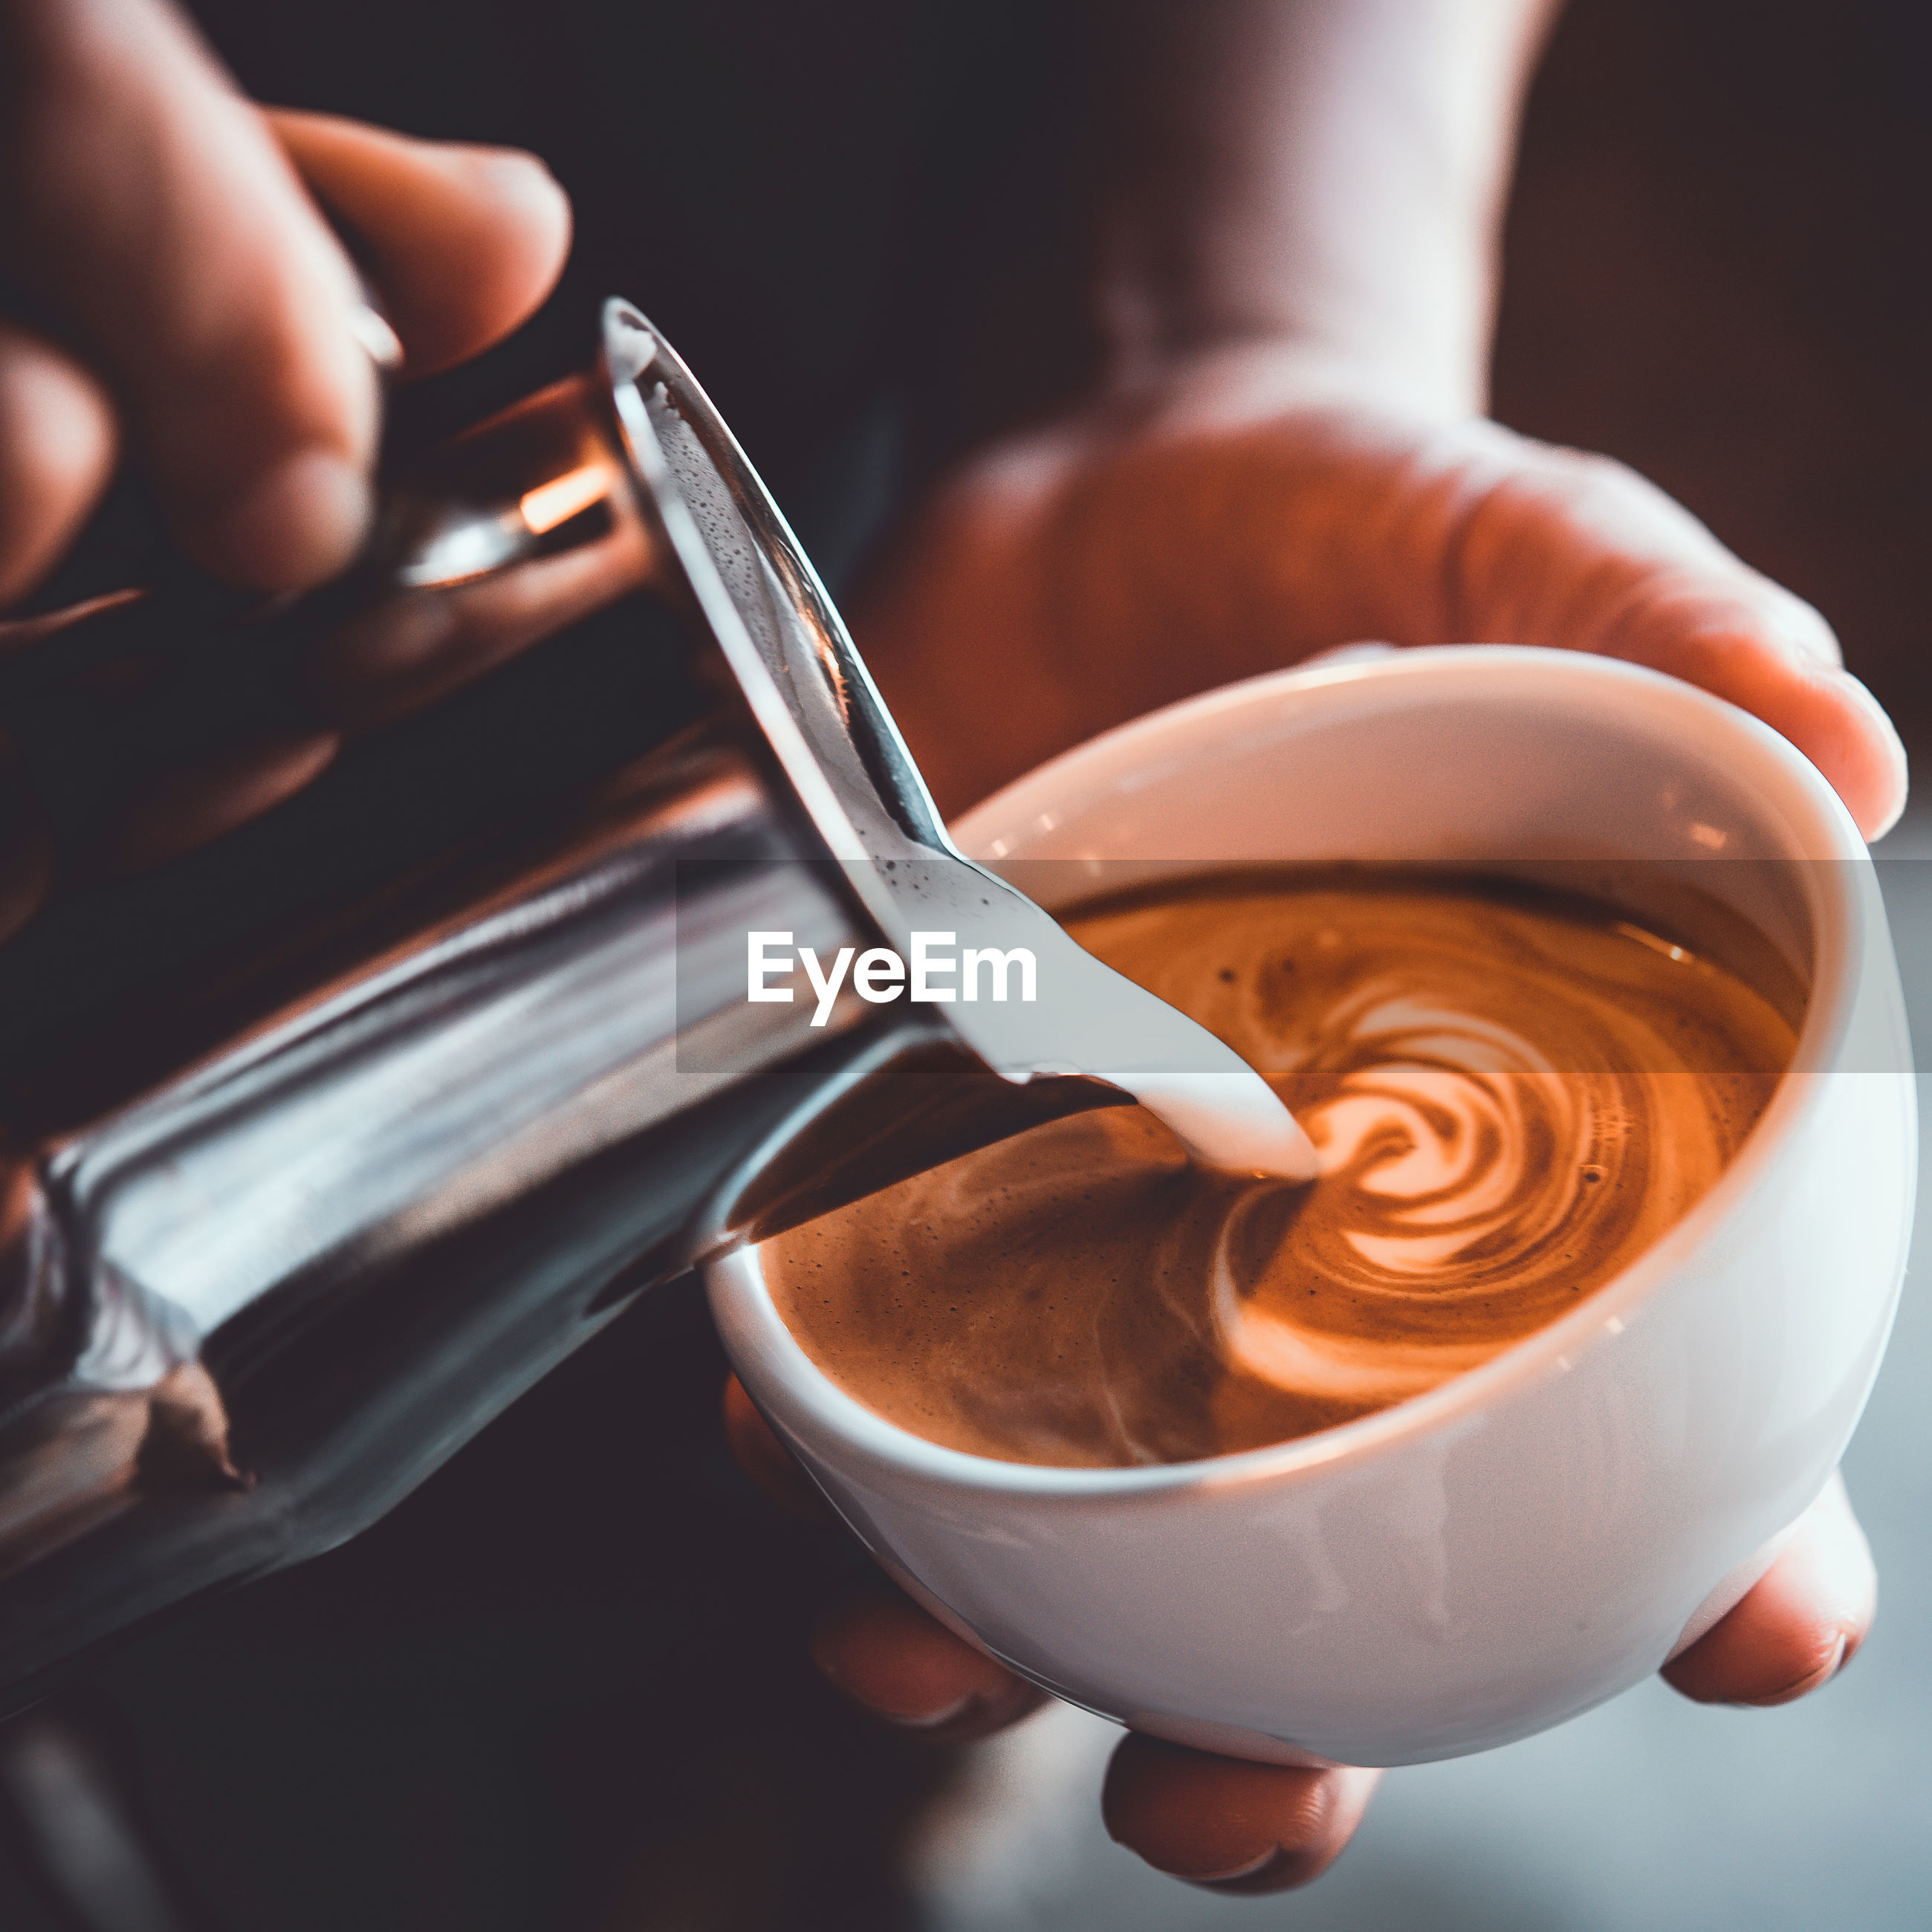 Midsection of person pouring milk in coffee cup